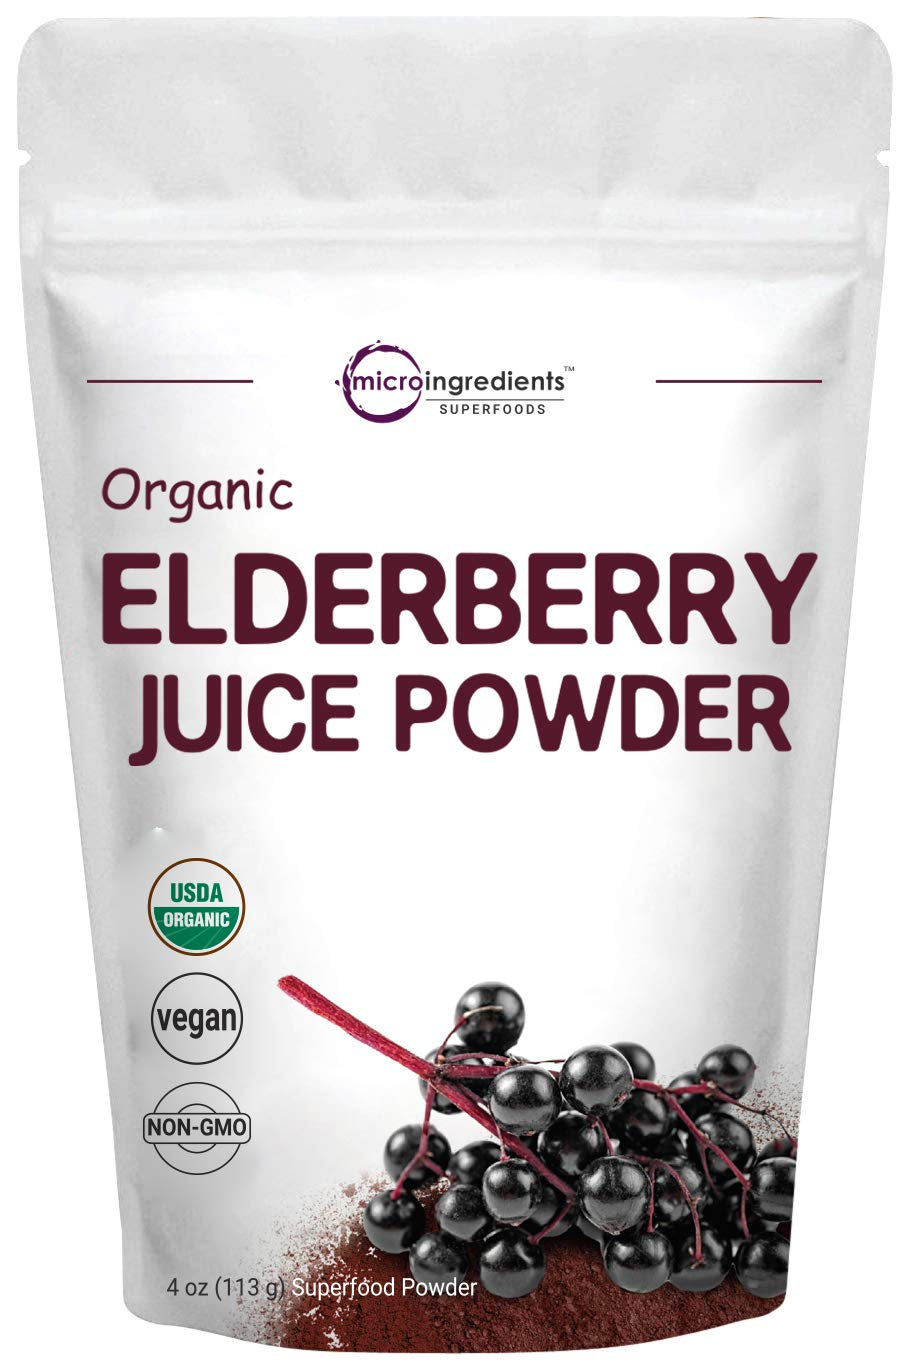 Certified Organic Elderberry Juice Powder, 4 Ounce, Strongly Supports Healthy Immune Response, Energy and Vascular Health, No GMOs and Vegan Friendly